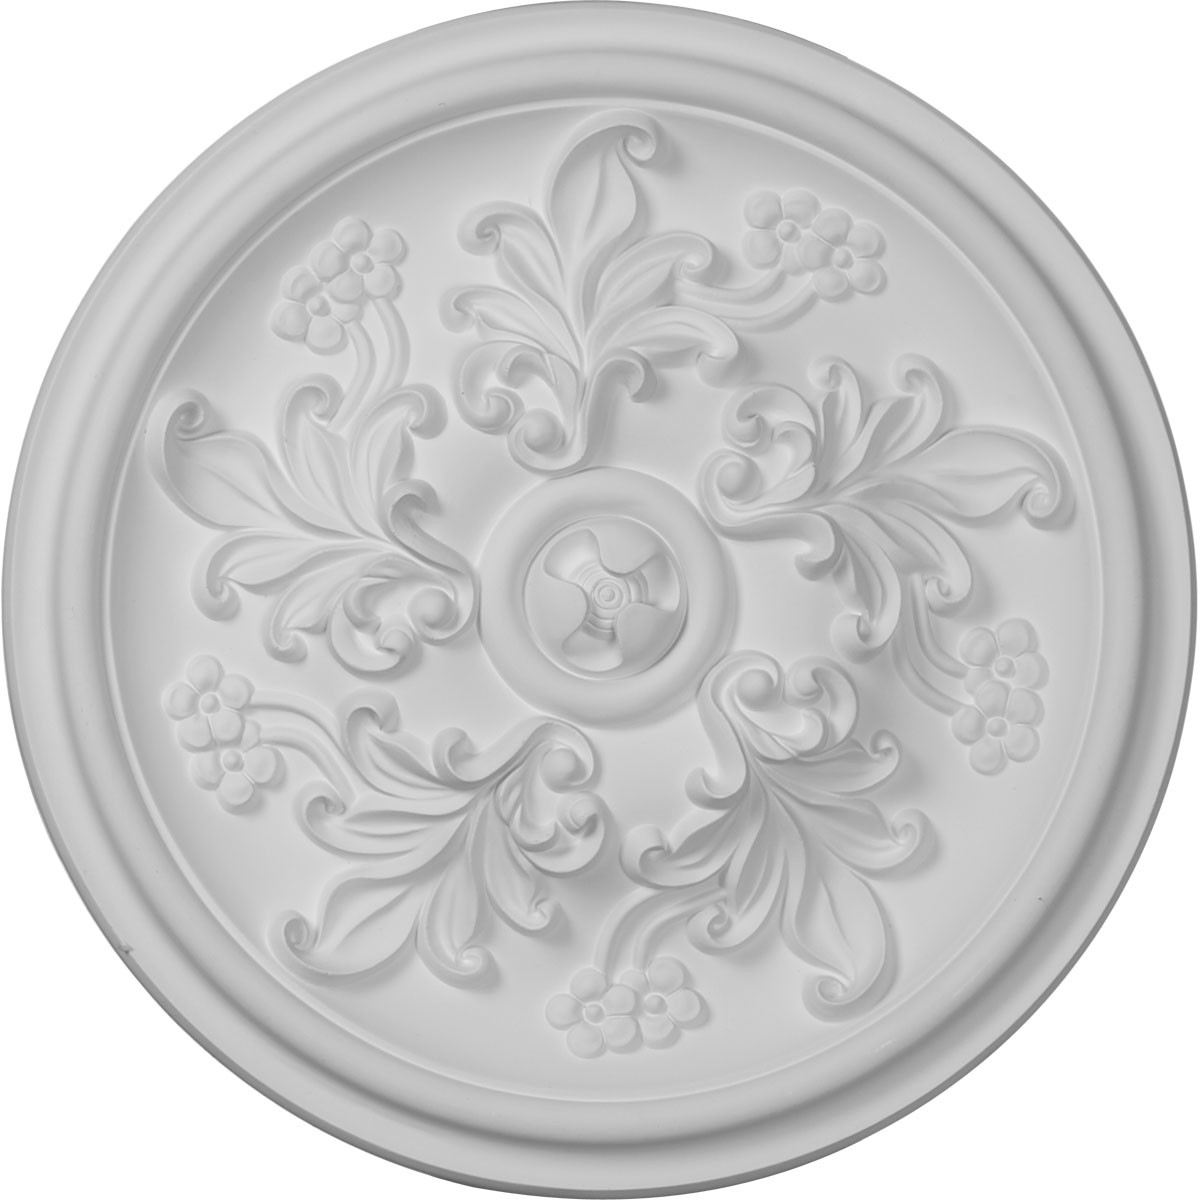 """EM-CM14KT - 14 1/2""""OD x 2 3/4""""P Katheryn Ceiling Medallion (Fits Canopies up to 2 1/8"""")"""